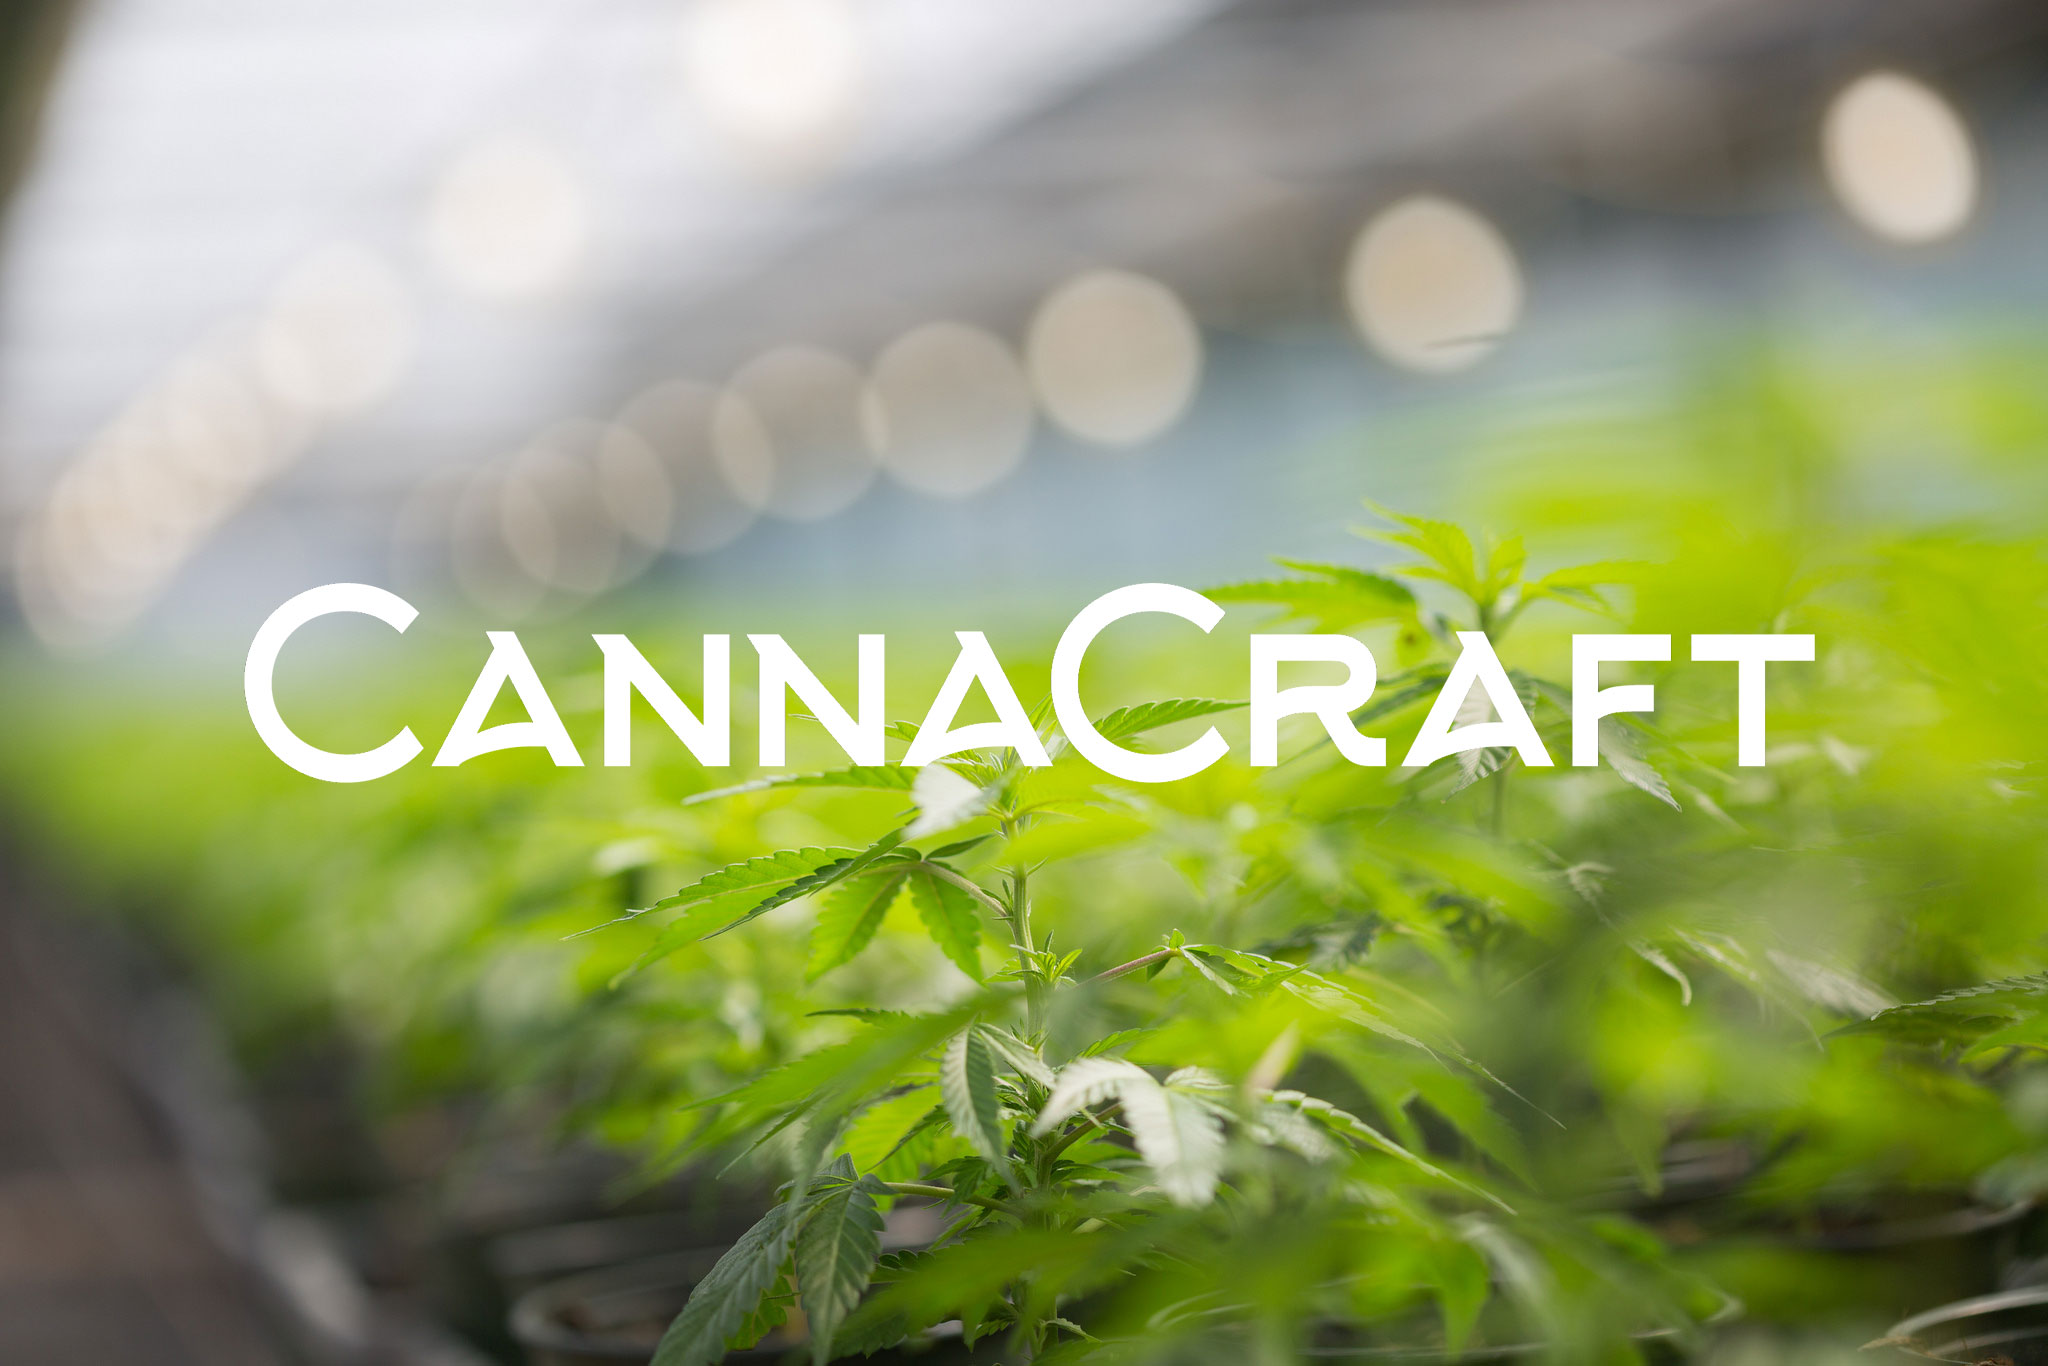 cannacraft_header.jpg